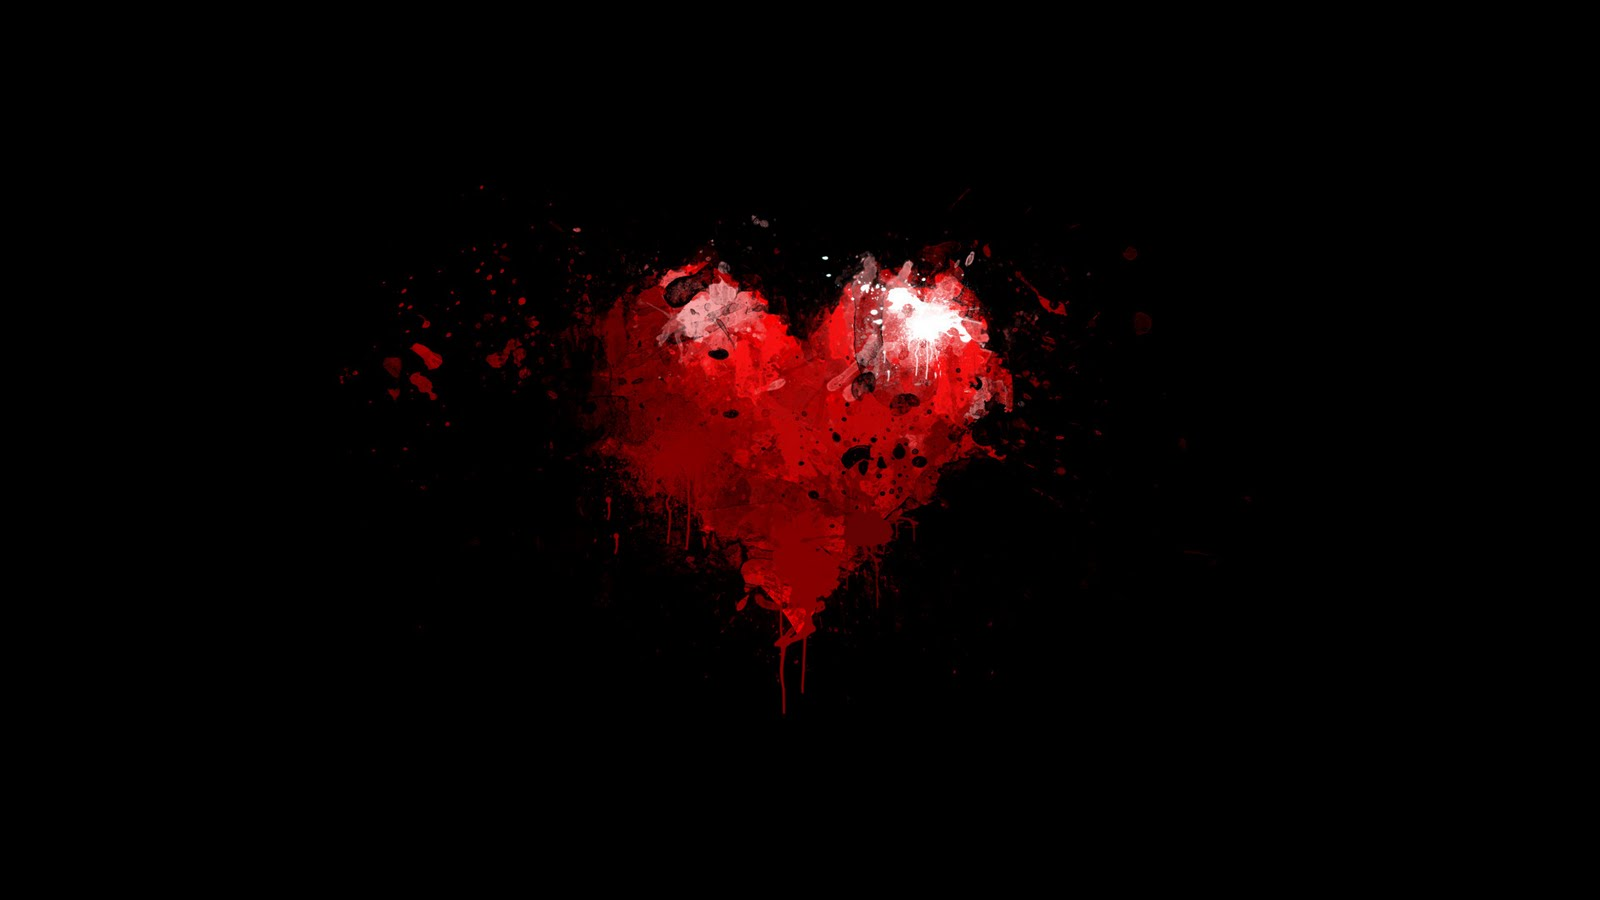 Love Wallpaper Black Background : 13 Awesome Black and Red Wallpapers HD - The Nology